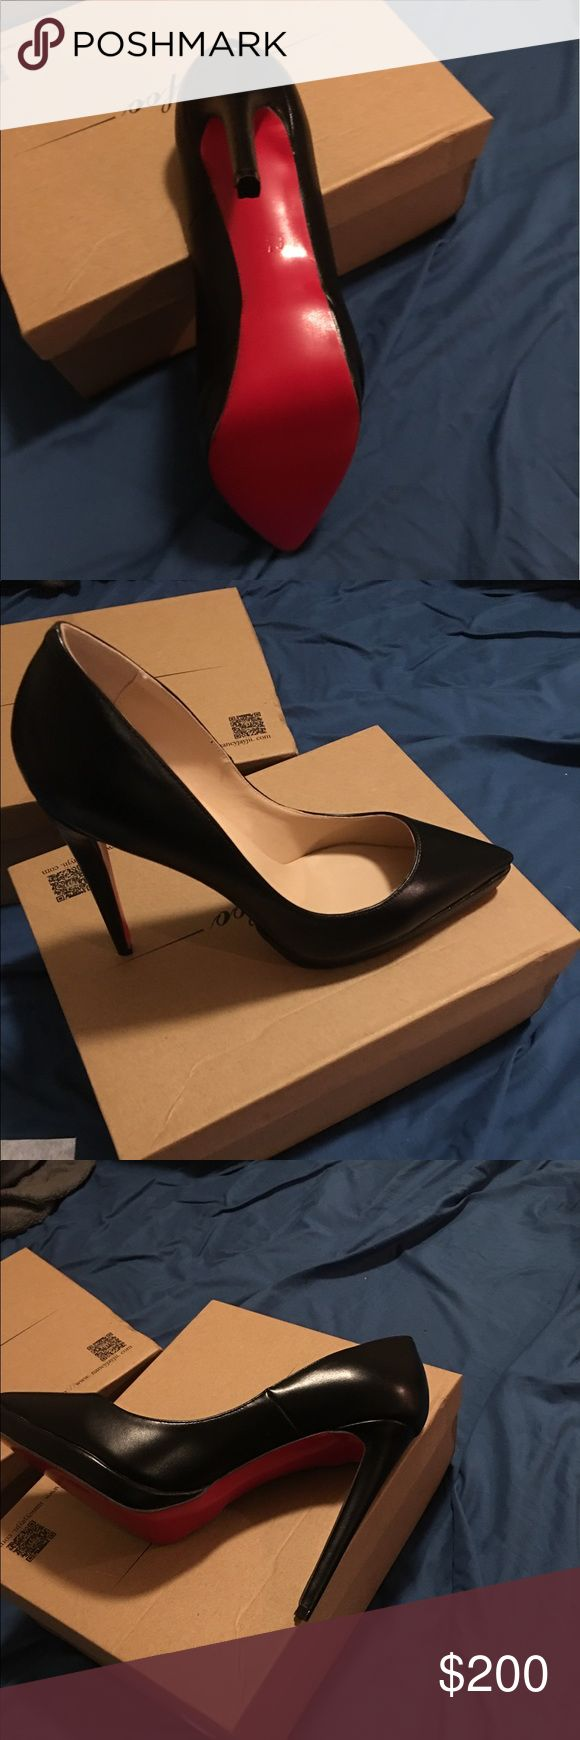 Thofoe red sole ladies shoes Red sole ladies shoes. So cute and Katy has never been worn. Brand new. It Says size 8.5 but it's a real size 9 American size. Comes with box and dust bag. Thofoe Shoes Heels